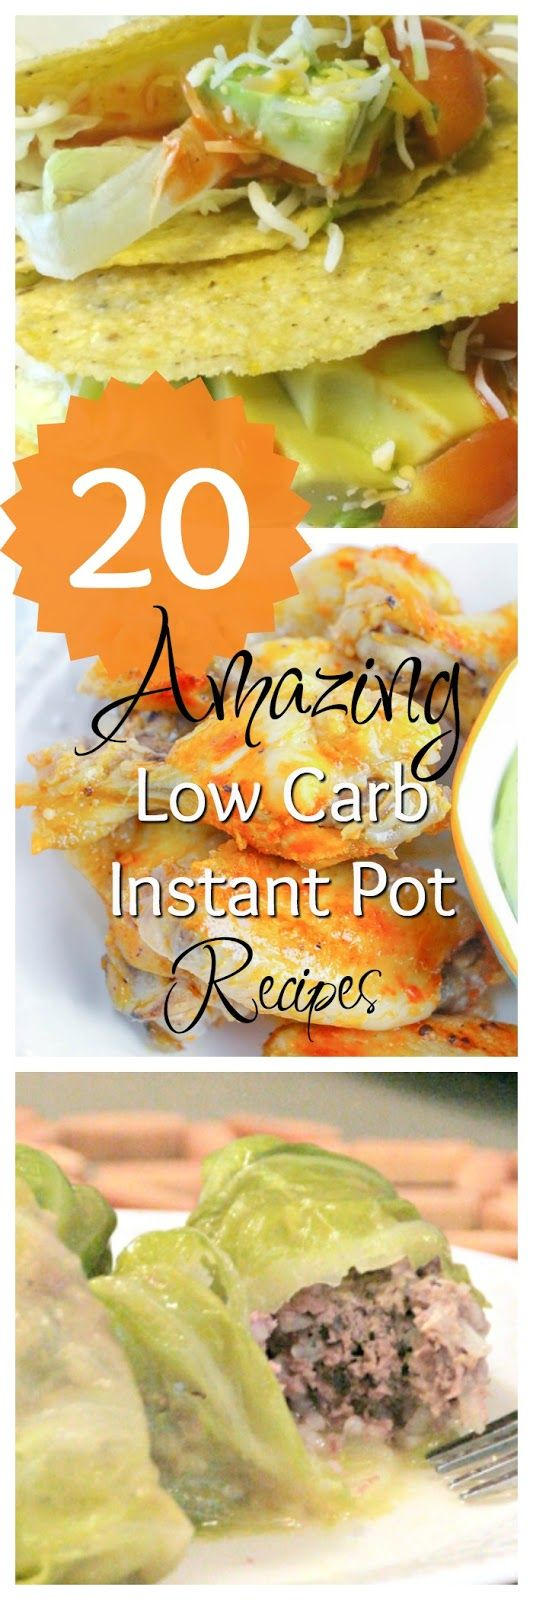 20 of the Most AMAZING Low Carb Instant Pot Recipes